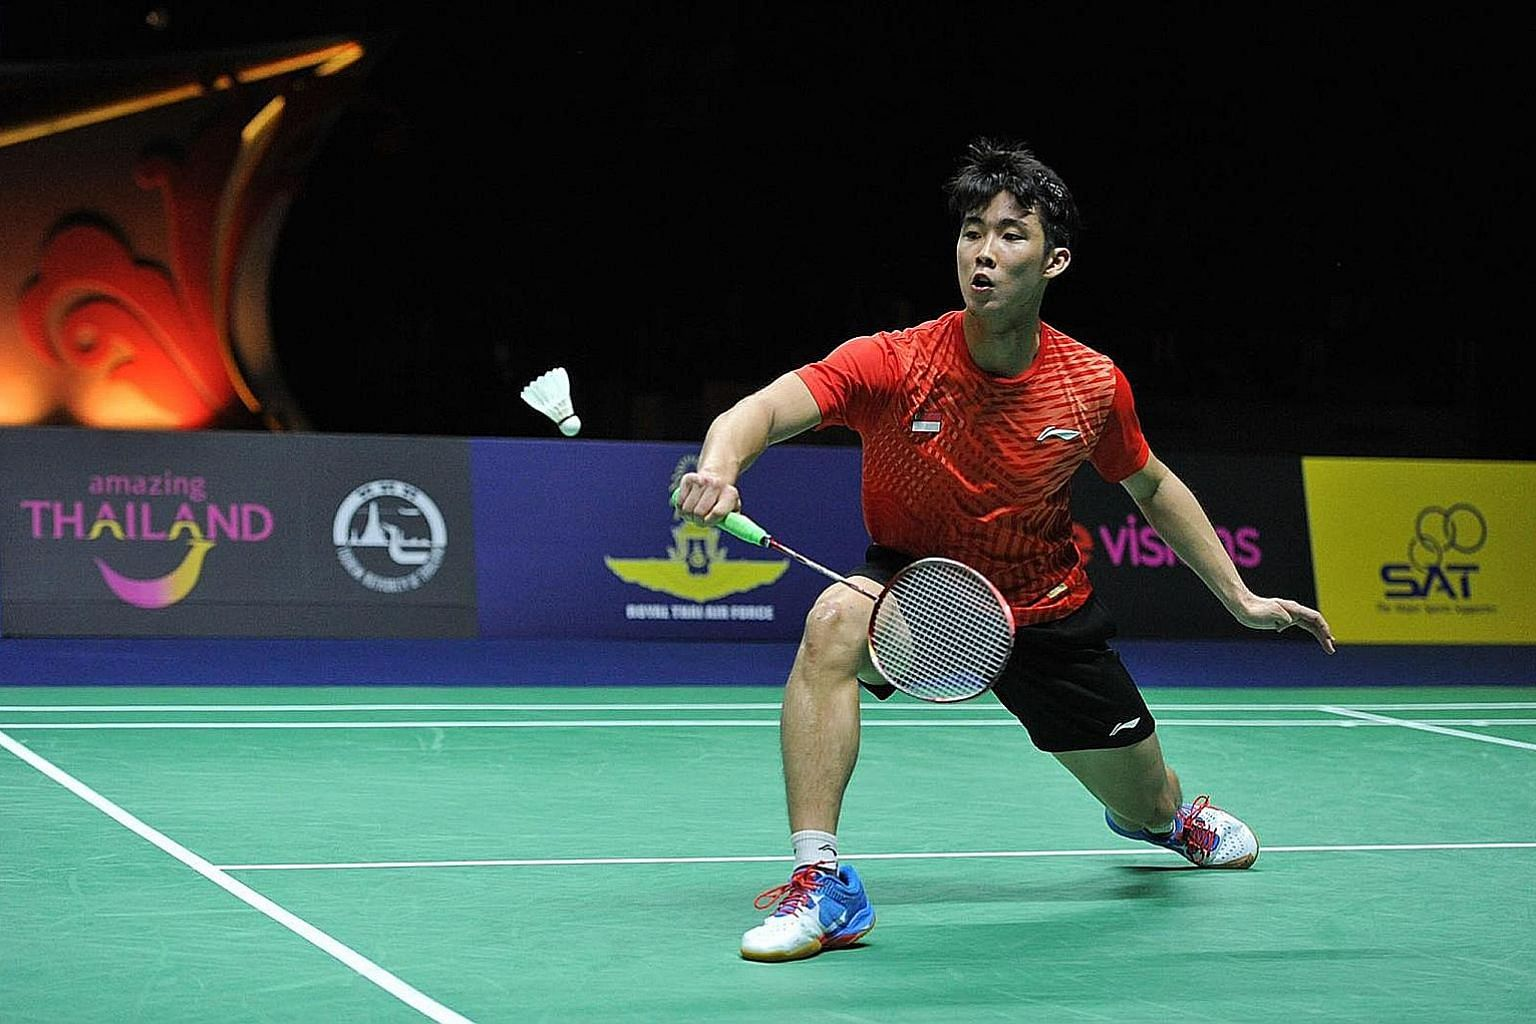 Loh Kean Yew en route to his 21-19, 21-18 victory over two-time Olympic champion Lin Dan in the Princess Sirivannavari Thailand Masters men's singles final in Bangkok yesterday.